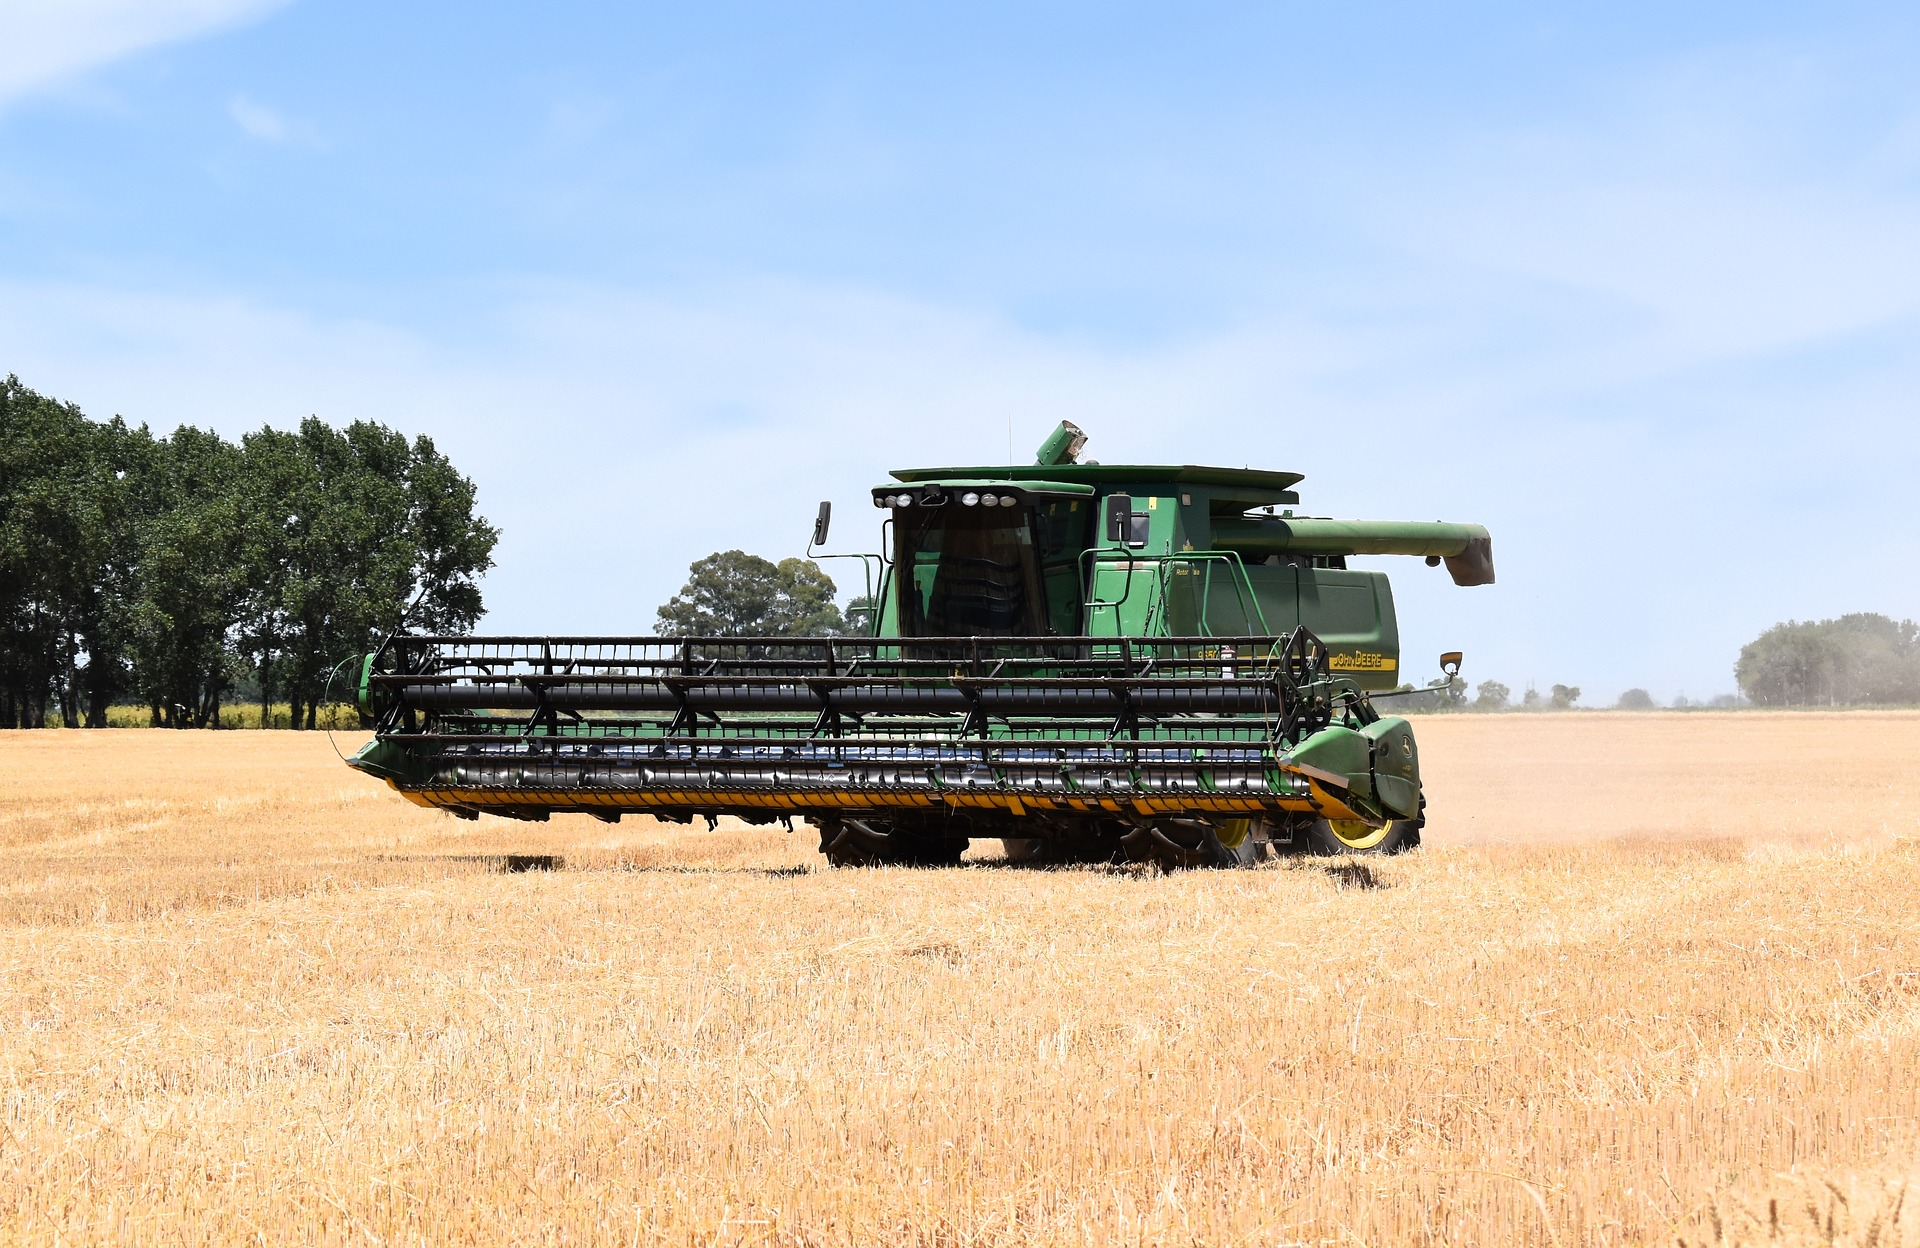 auction tips for buying a used combine harvester at auction